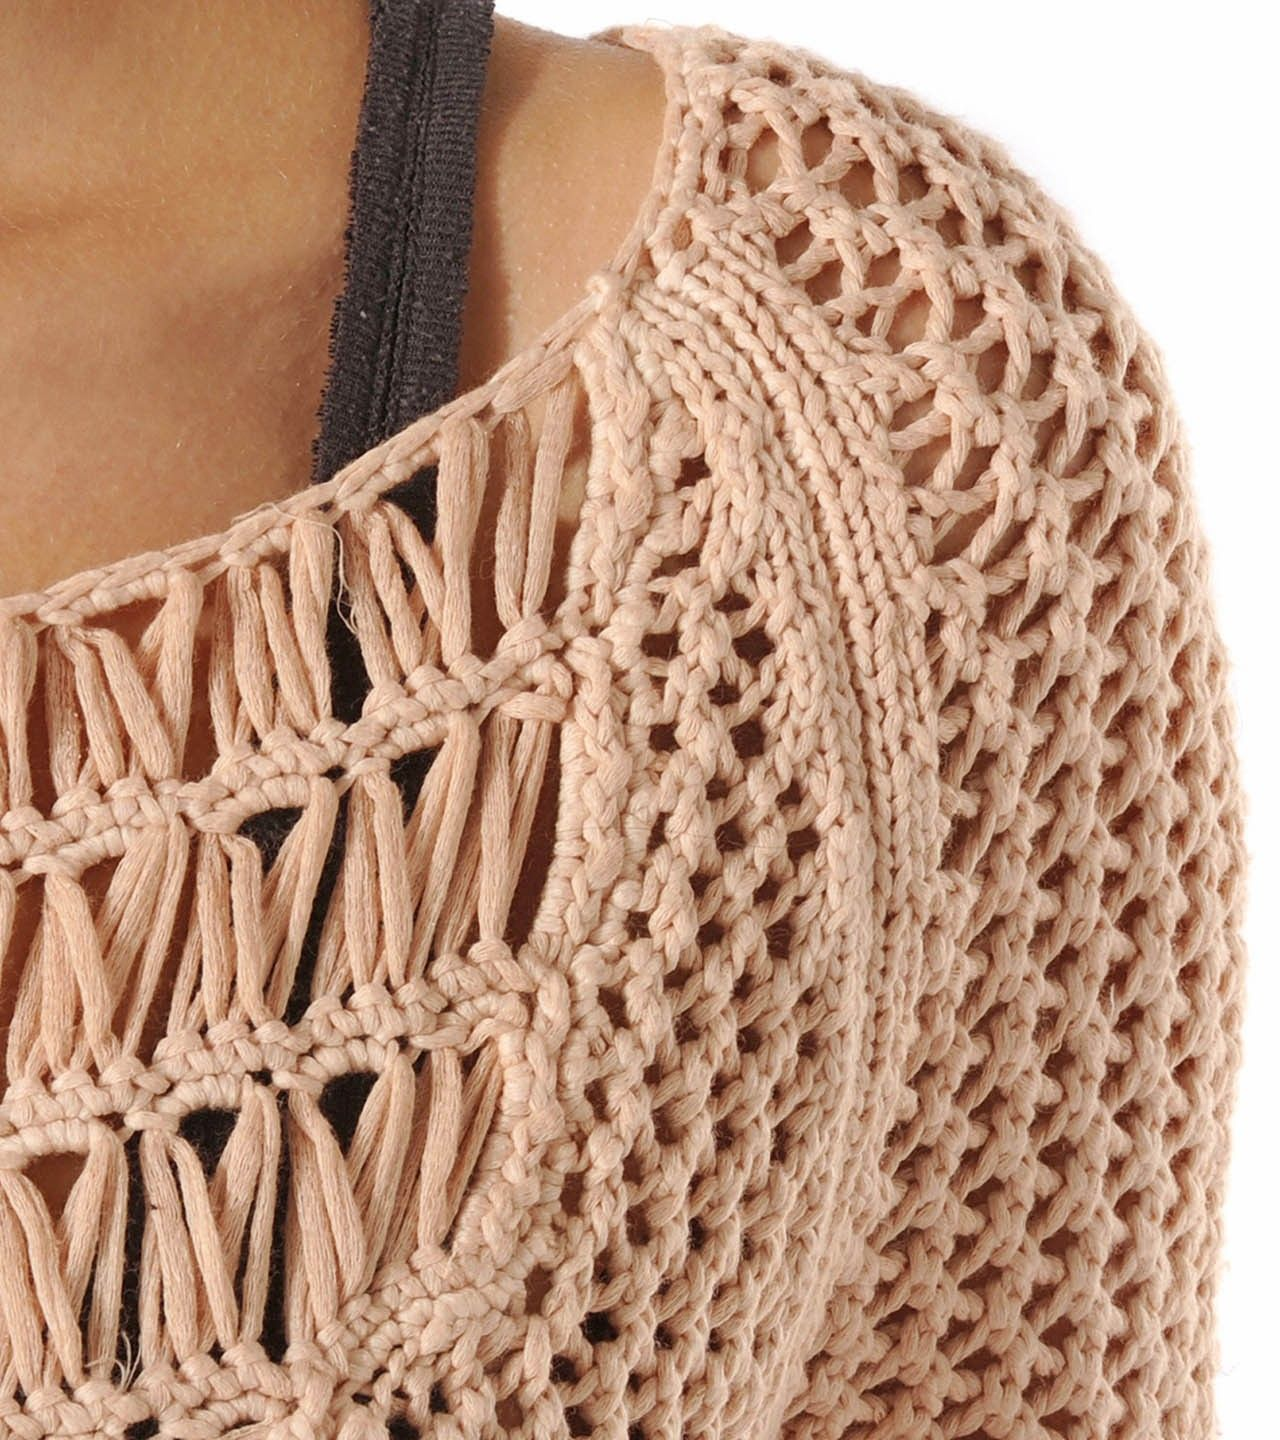 CILAN - broomstick lace meets eyelets | Crochet - 1 of 4 misc ...